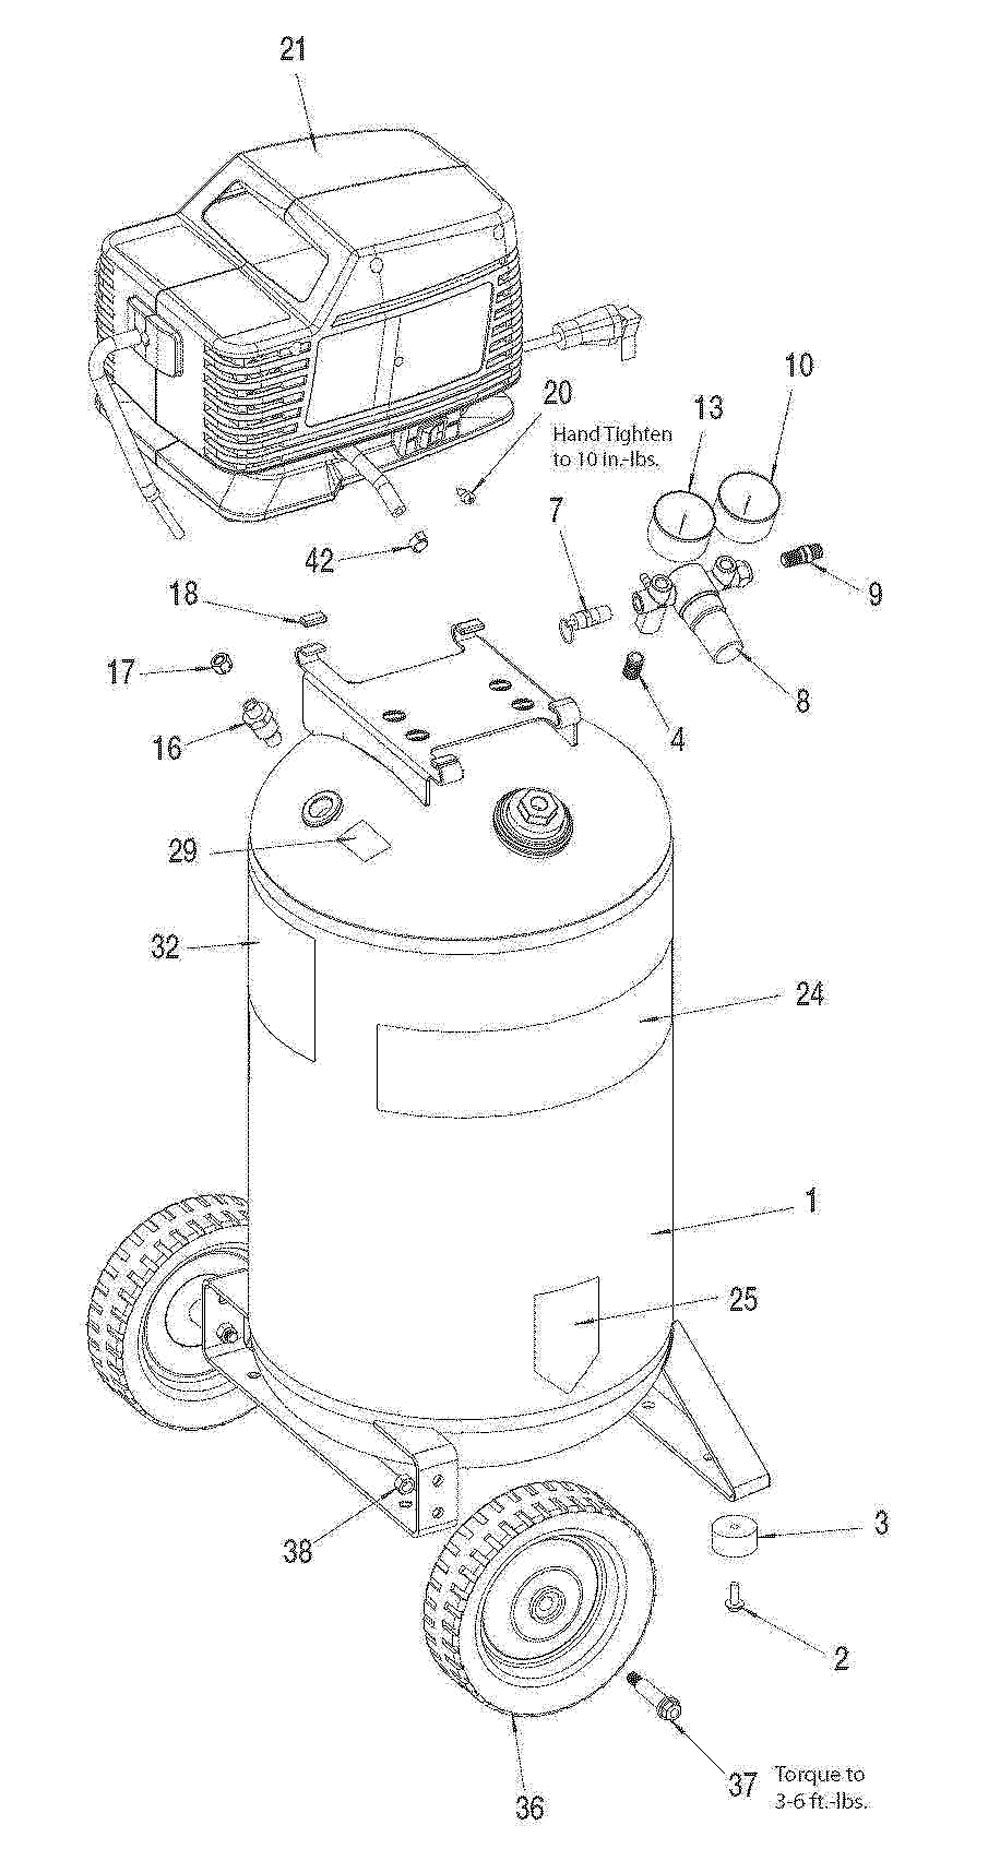 919.166442 - Air Compressor Parts schematic